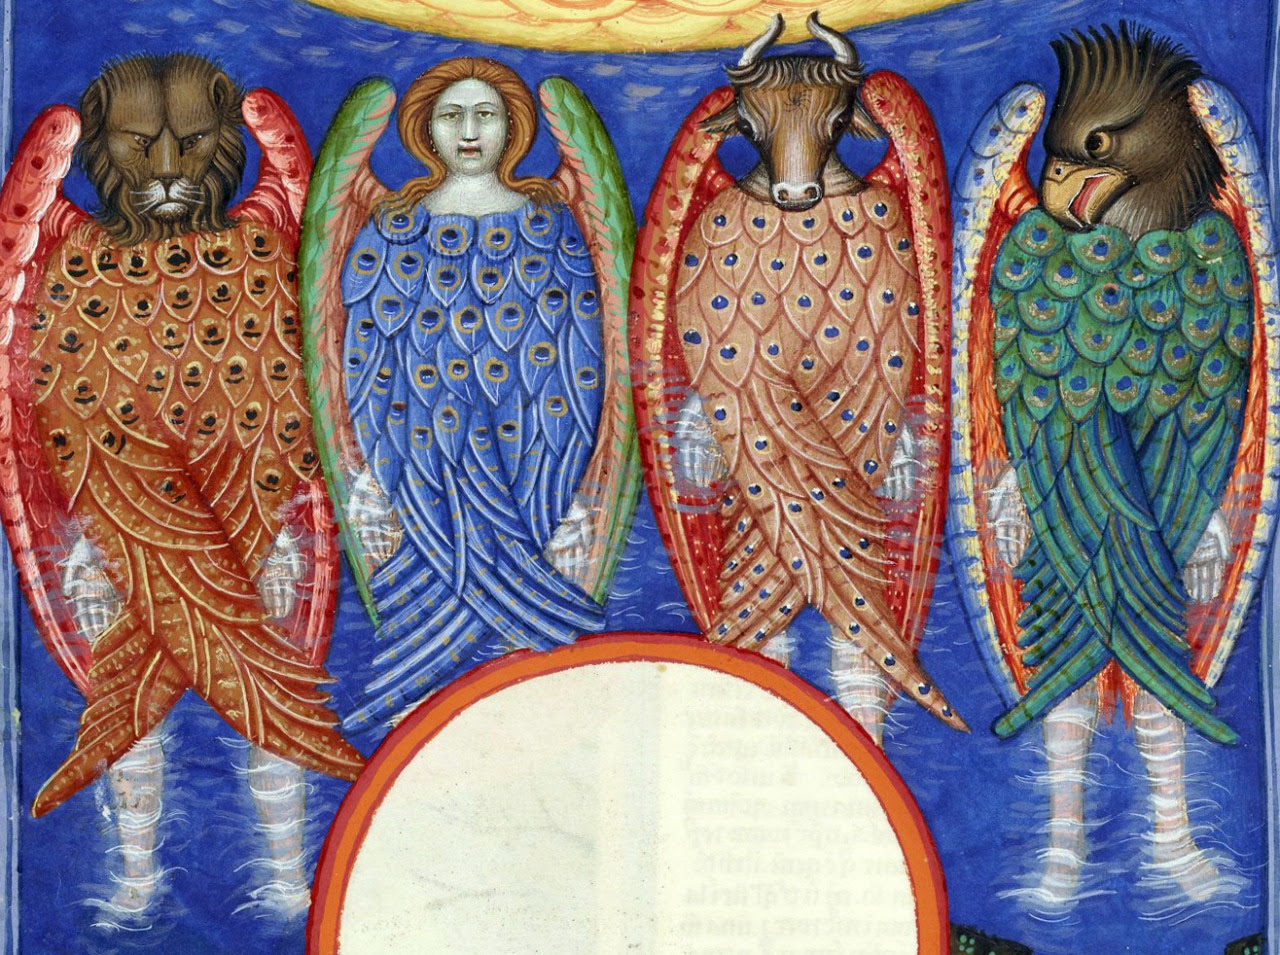 Ezekiel's Vision (Ezekiel 1:1-30) 'Also out of the midst thereof came the likeness of four living creatures. And this was their appearance; they had the likeness of a man. […] As for the likeness of their faces, they four had the face of a man, and...